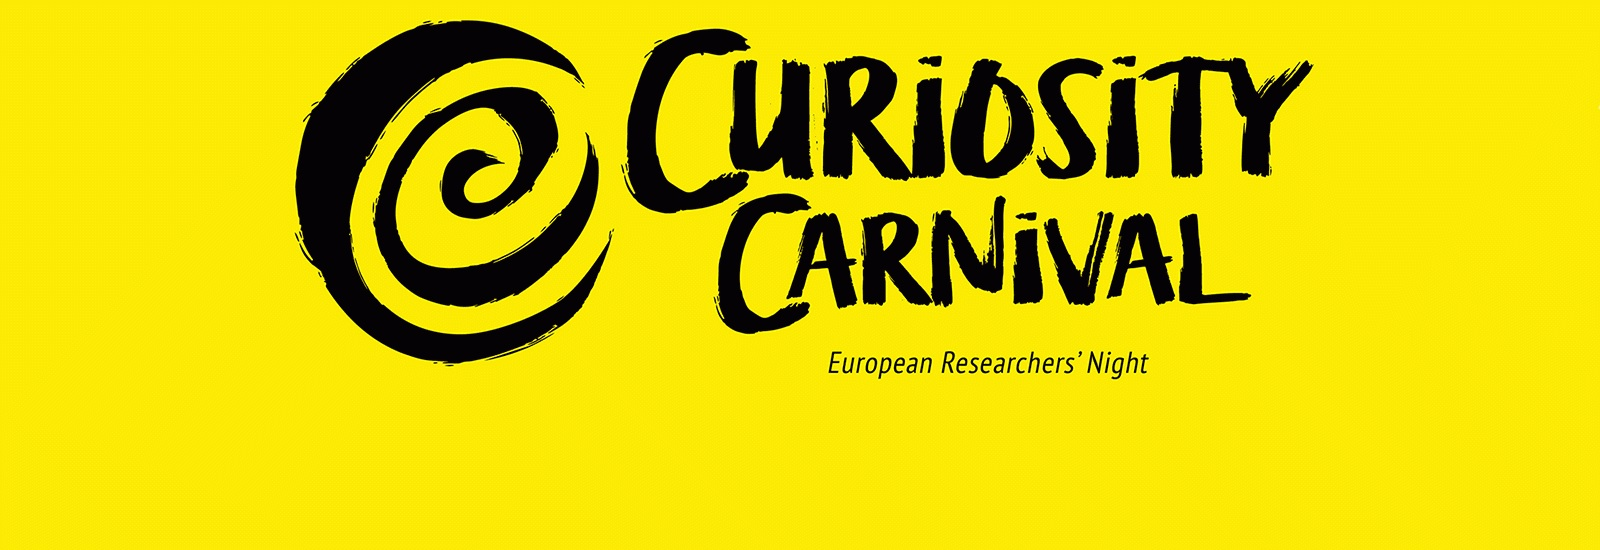 Curiosity Carnival rolls into town